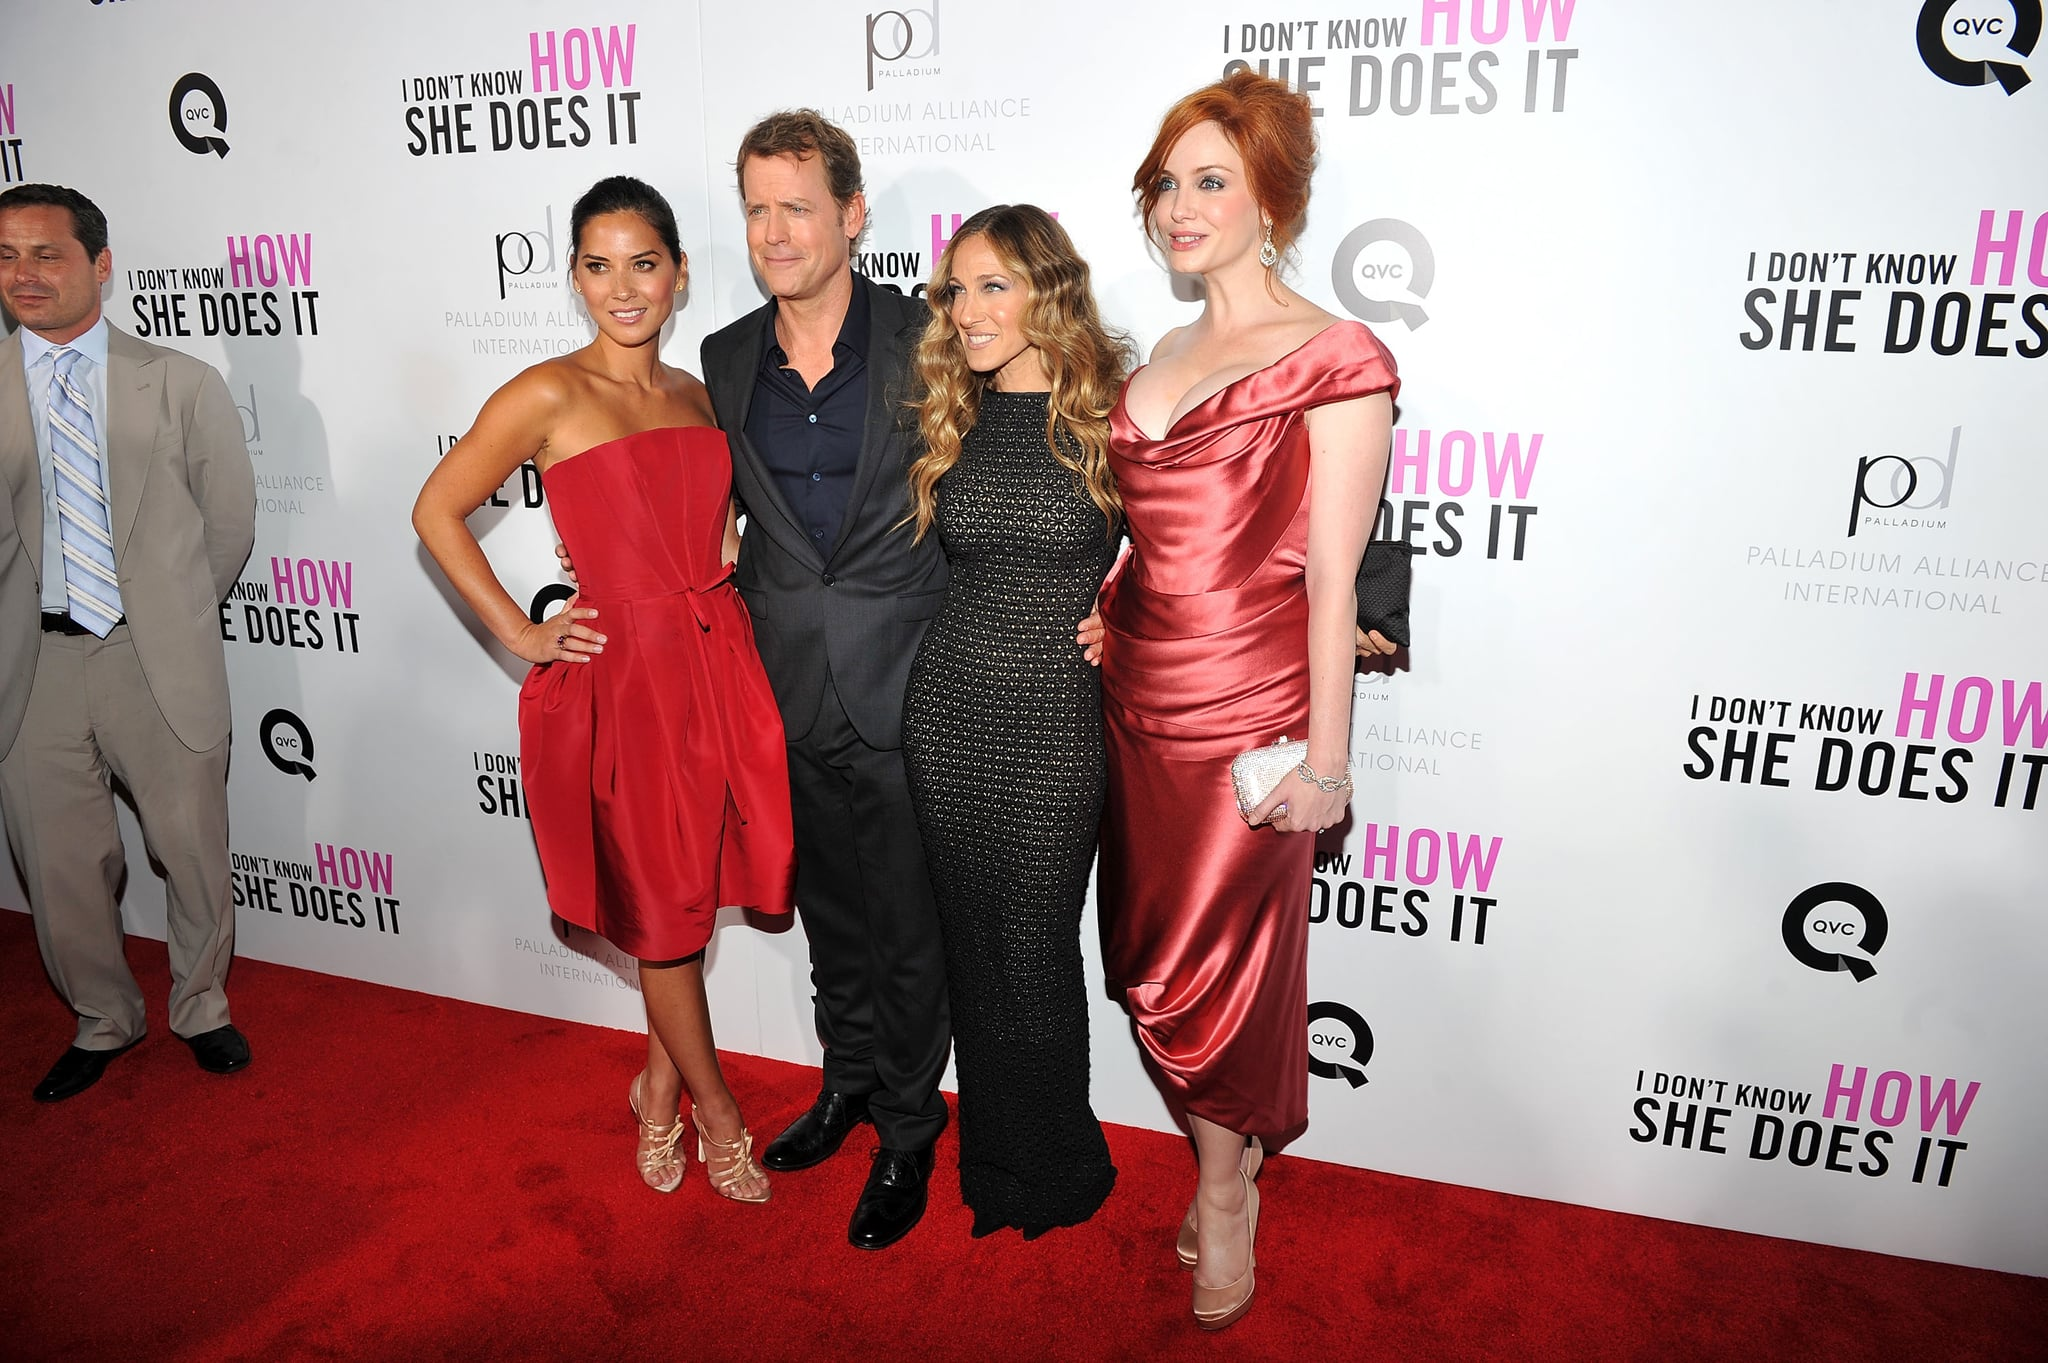 Sarah Jessica Parker posed with her supporting cast, including Greg Kinnear, Christina Hendricks, and Olivia Munn.